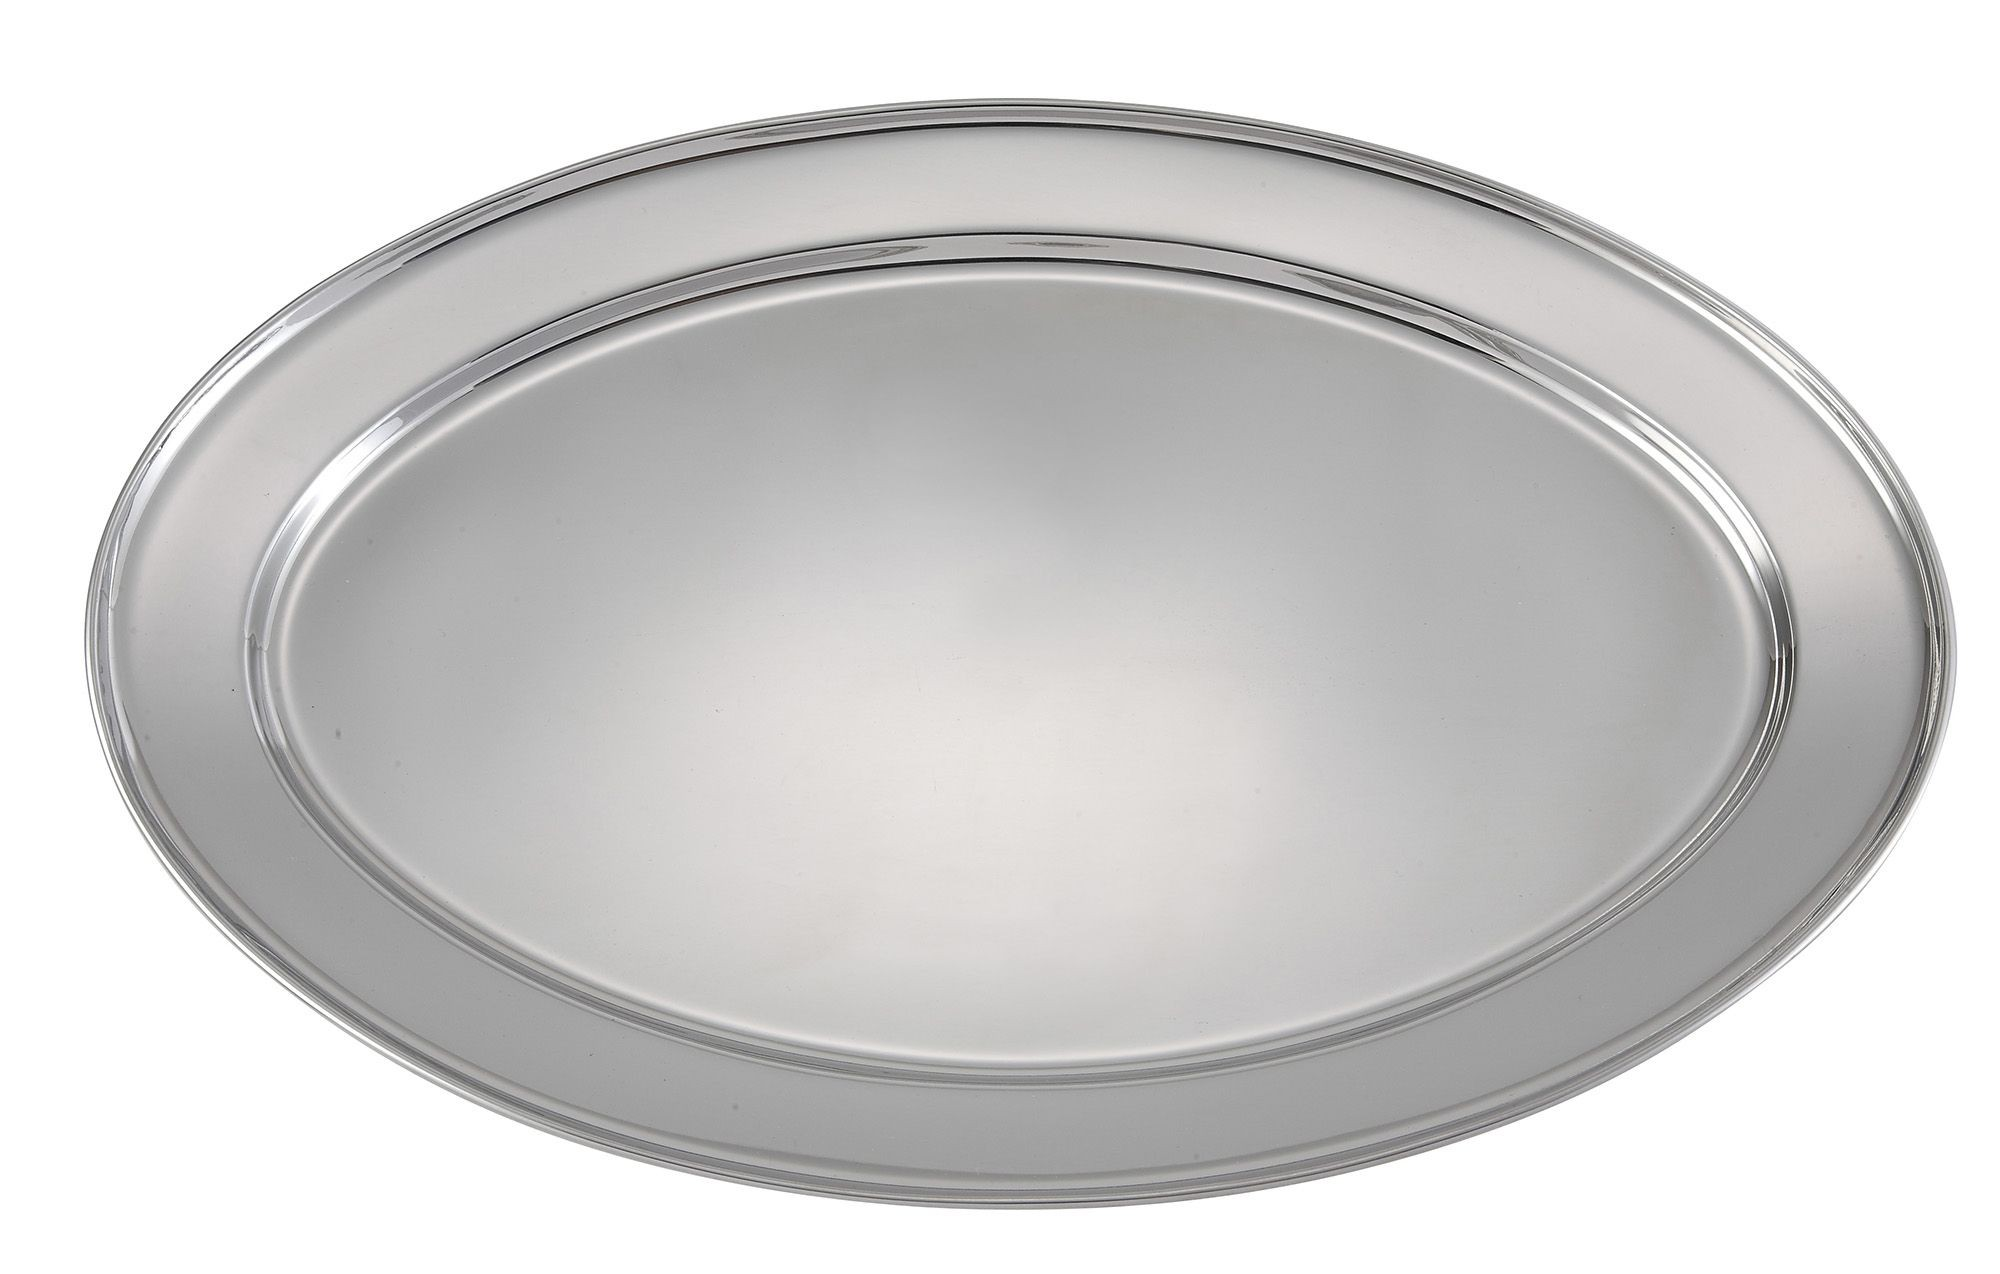 "Winco OPL-20 Stainless Steel Oval Platter - 20"" x 13-3/4"""